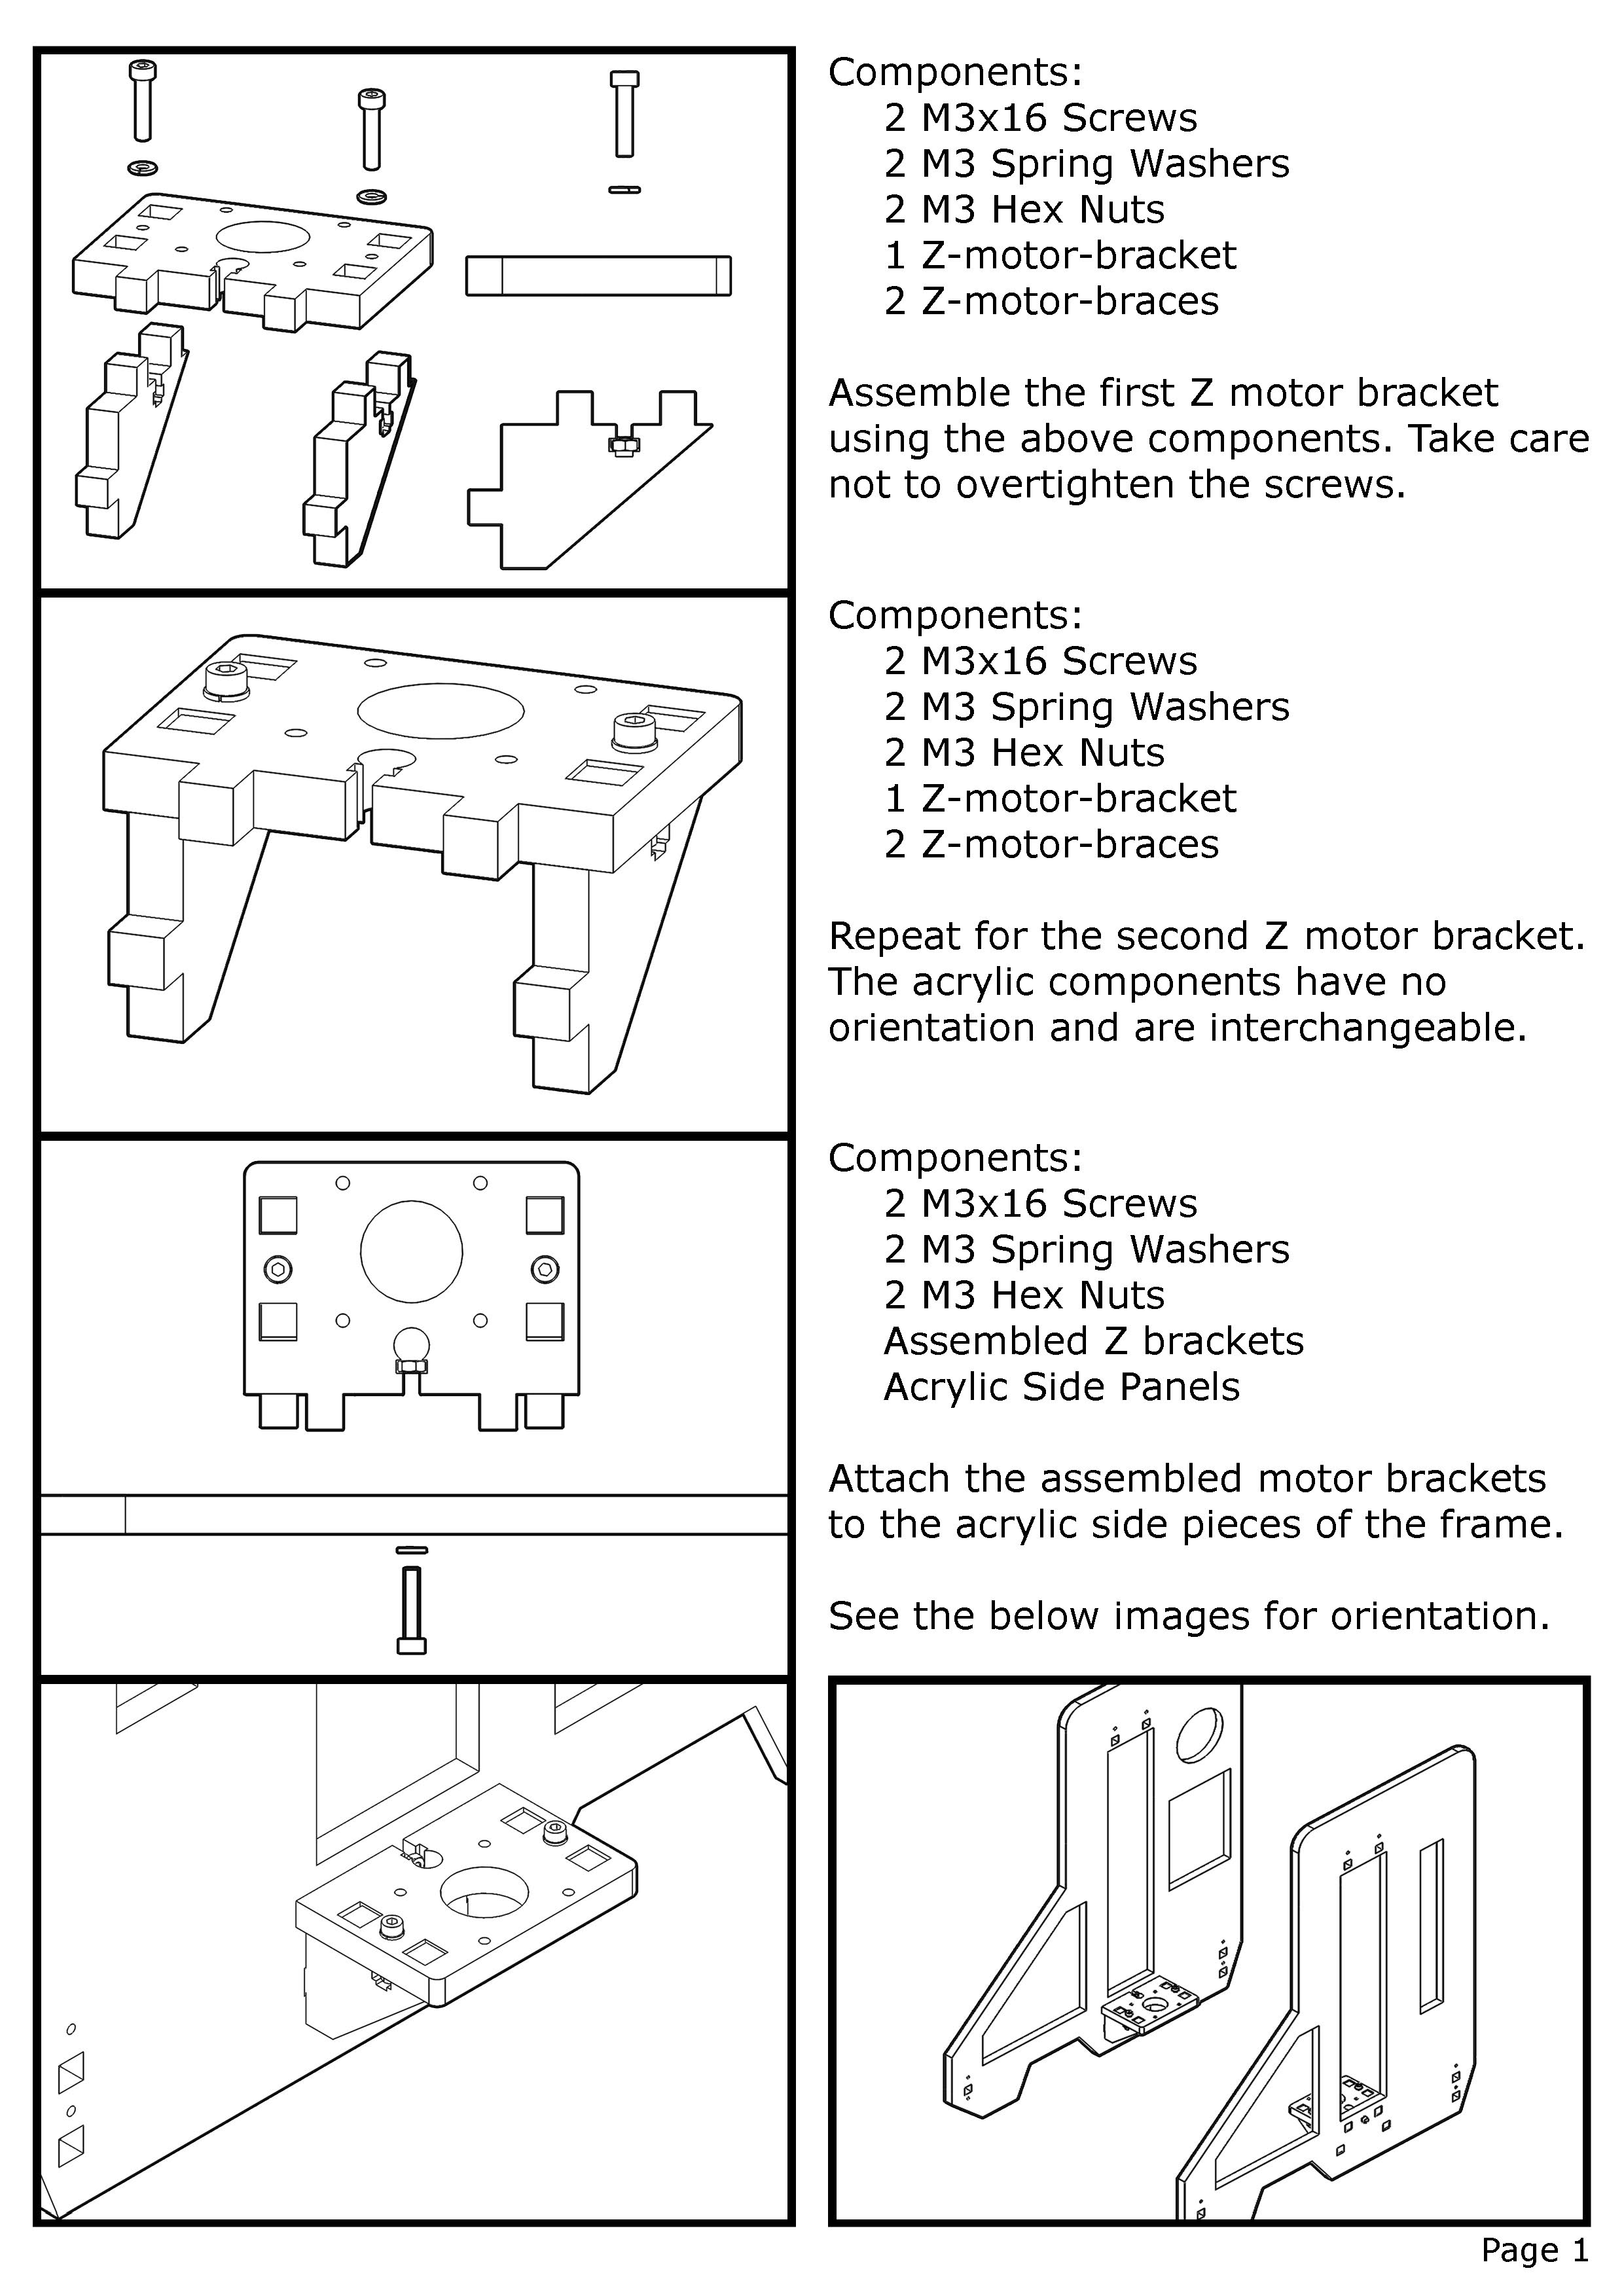 Example assembly instructions. Not quite Ikea-simple yet, but I'm working on it!